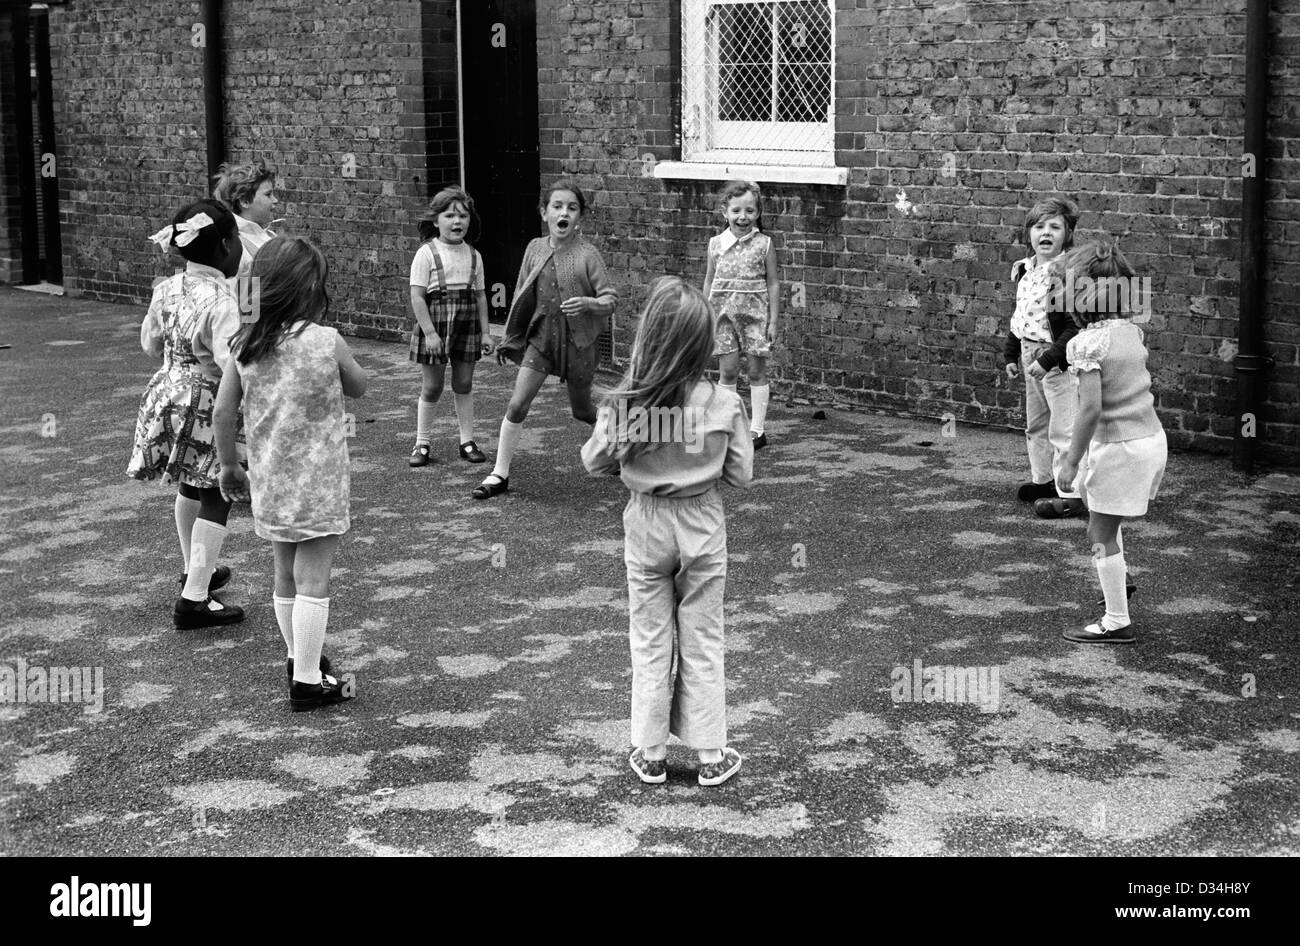 Primary scholl playground. Girls playing together. South London. 1970s Britain. My ref 23a/1036/, 1975, - Stock Image